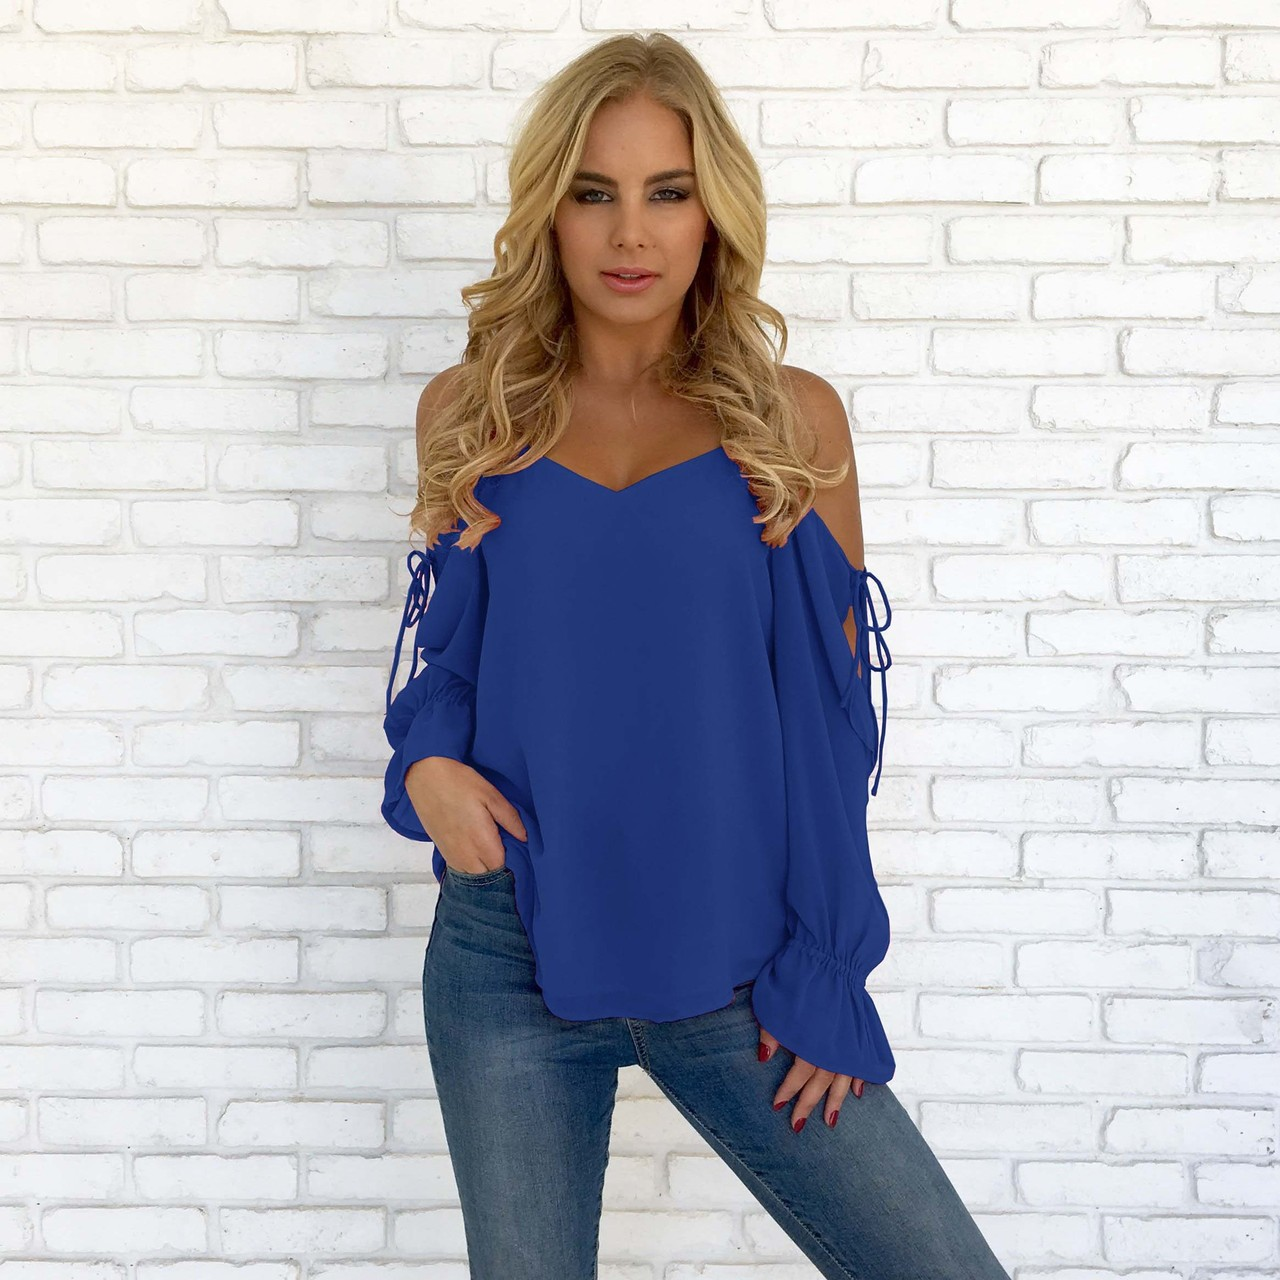 aa37f71cbe6 2019 Spring and Summer Women Sexy Deep V-Neck Shirt Casual Long Sleeve Top  Ladies Fashion Solid Color Loose T-Shirts Off the Shoulder Chiffon Blouse  ...